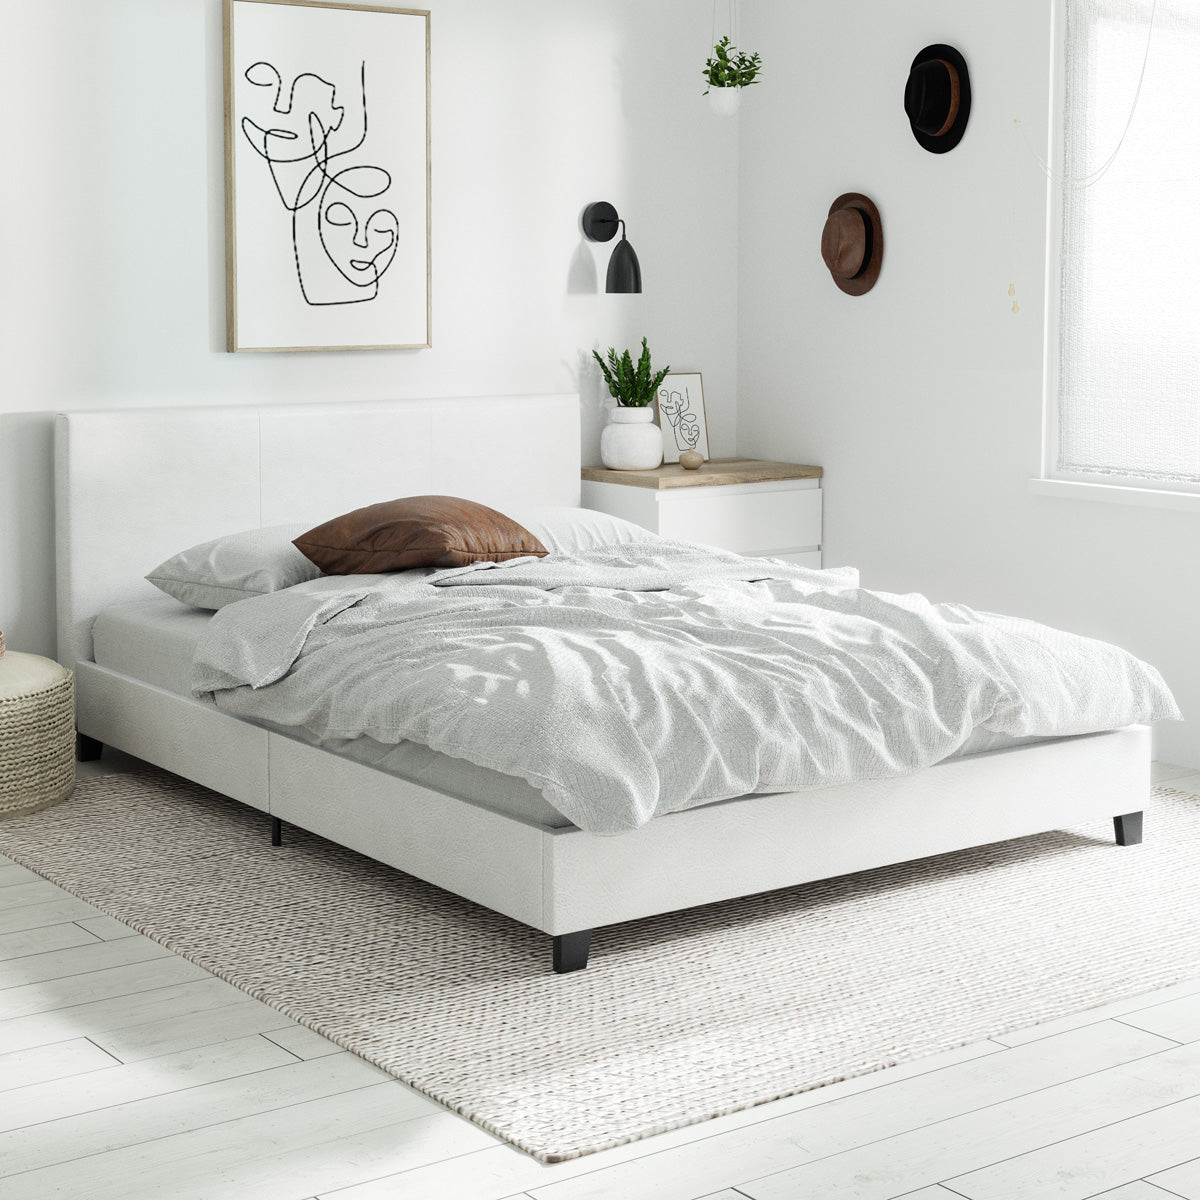 Arthur PU Leather Bed Frame (White)